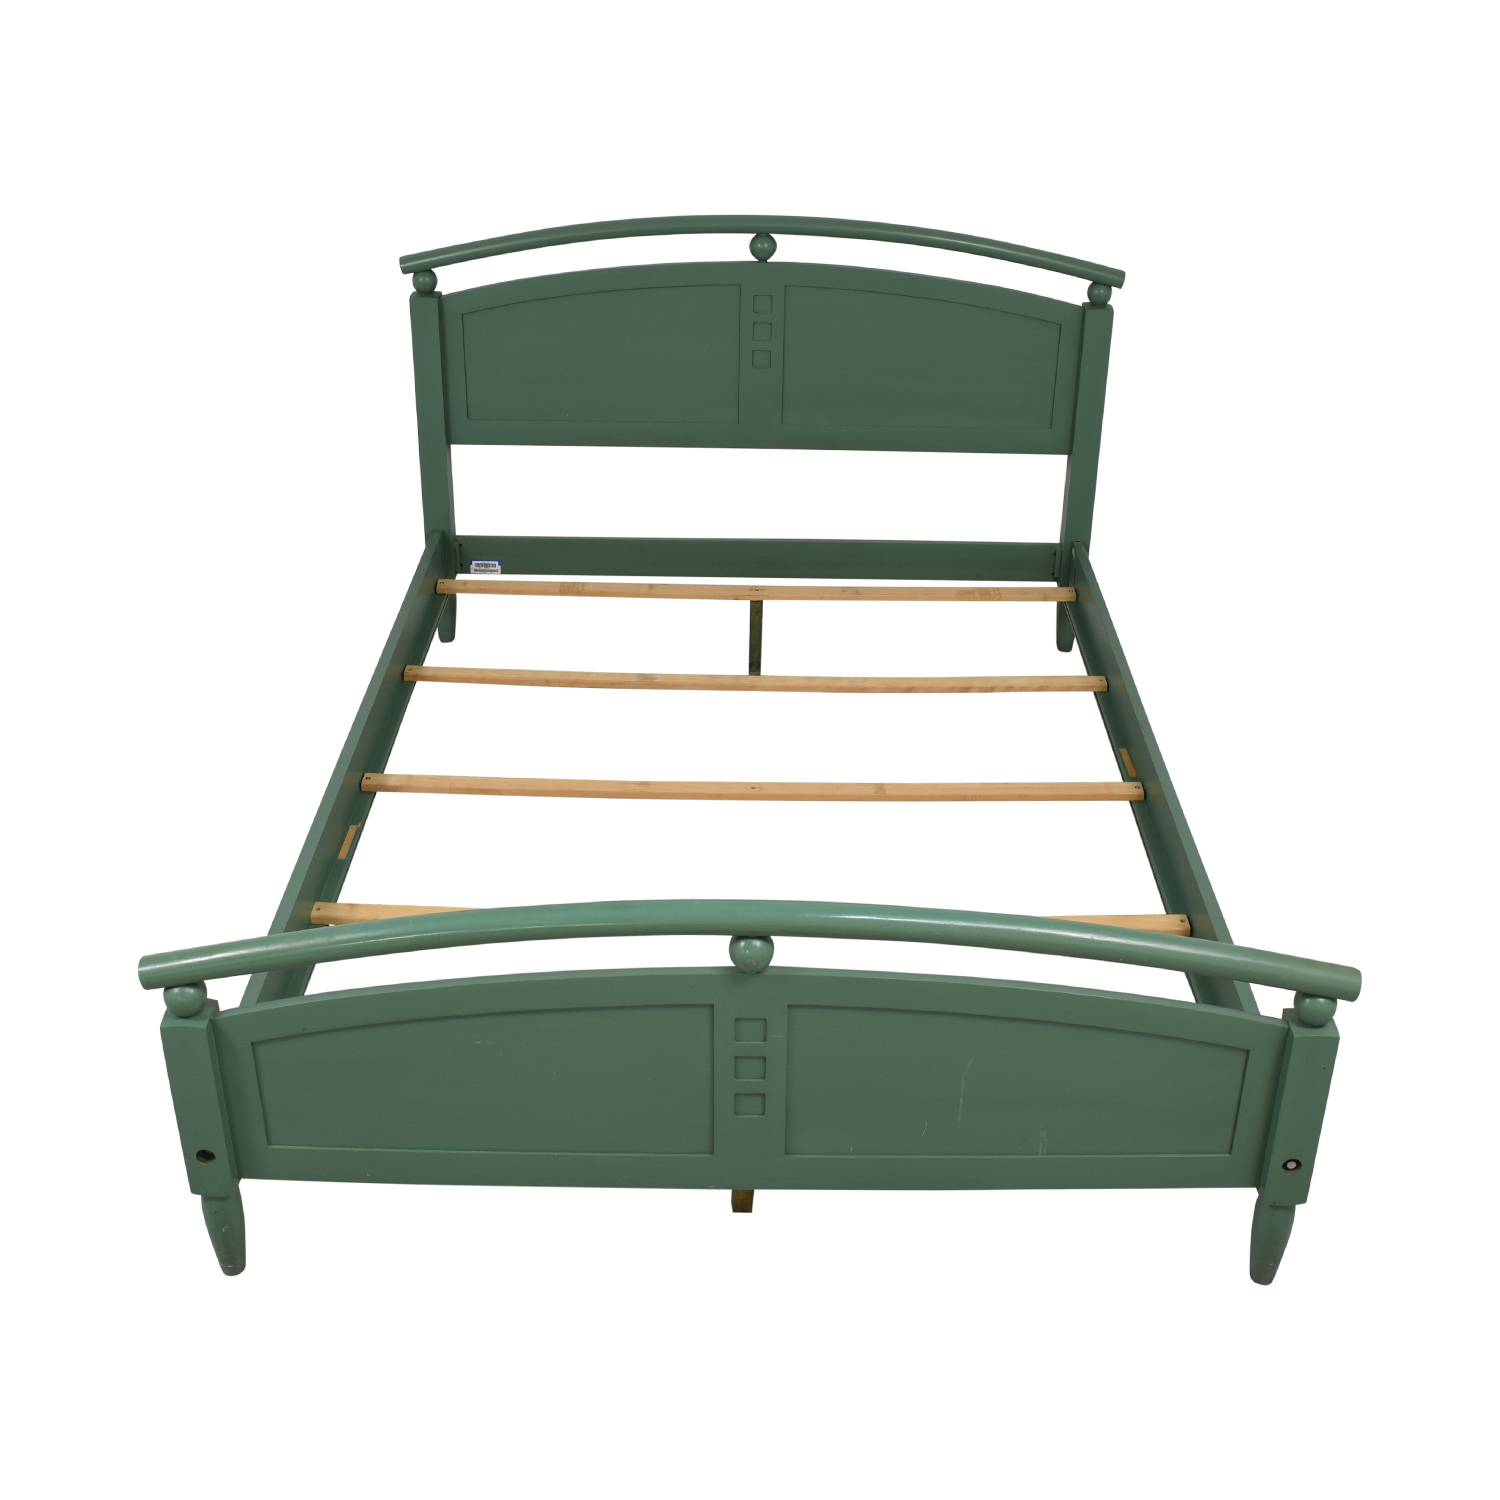 Ethan Allen Ethan Allen American Dimensions Double Arched Queen Bed pa